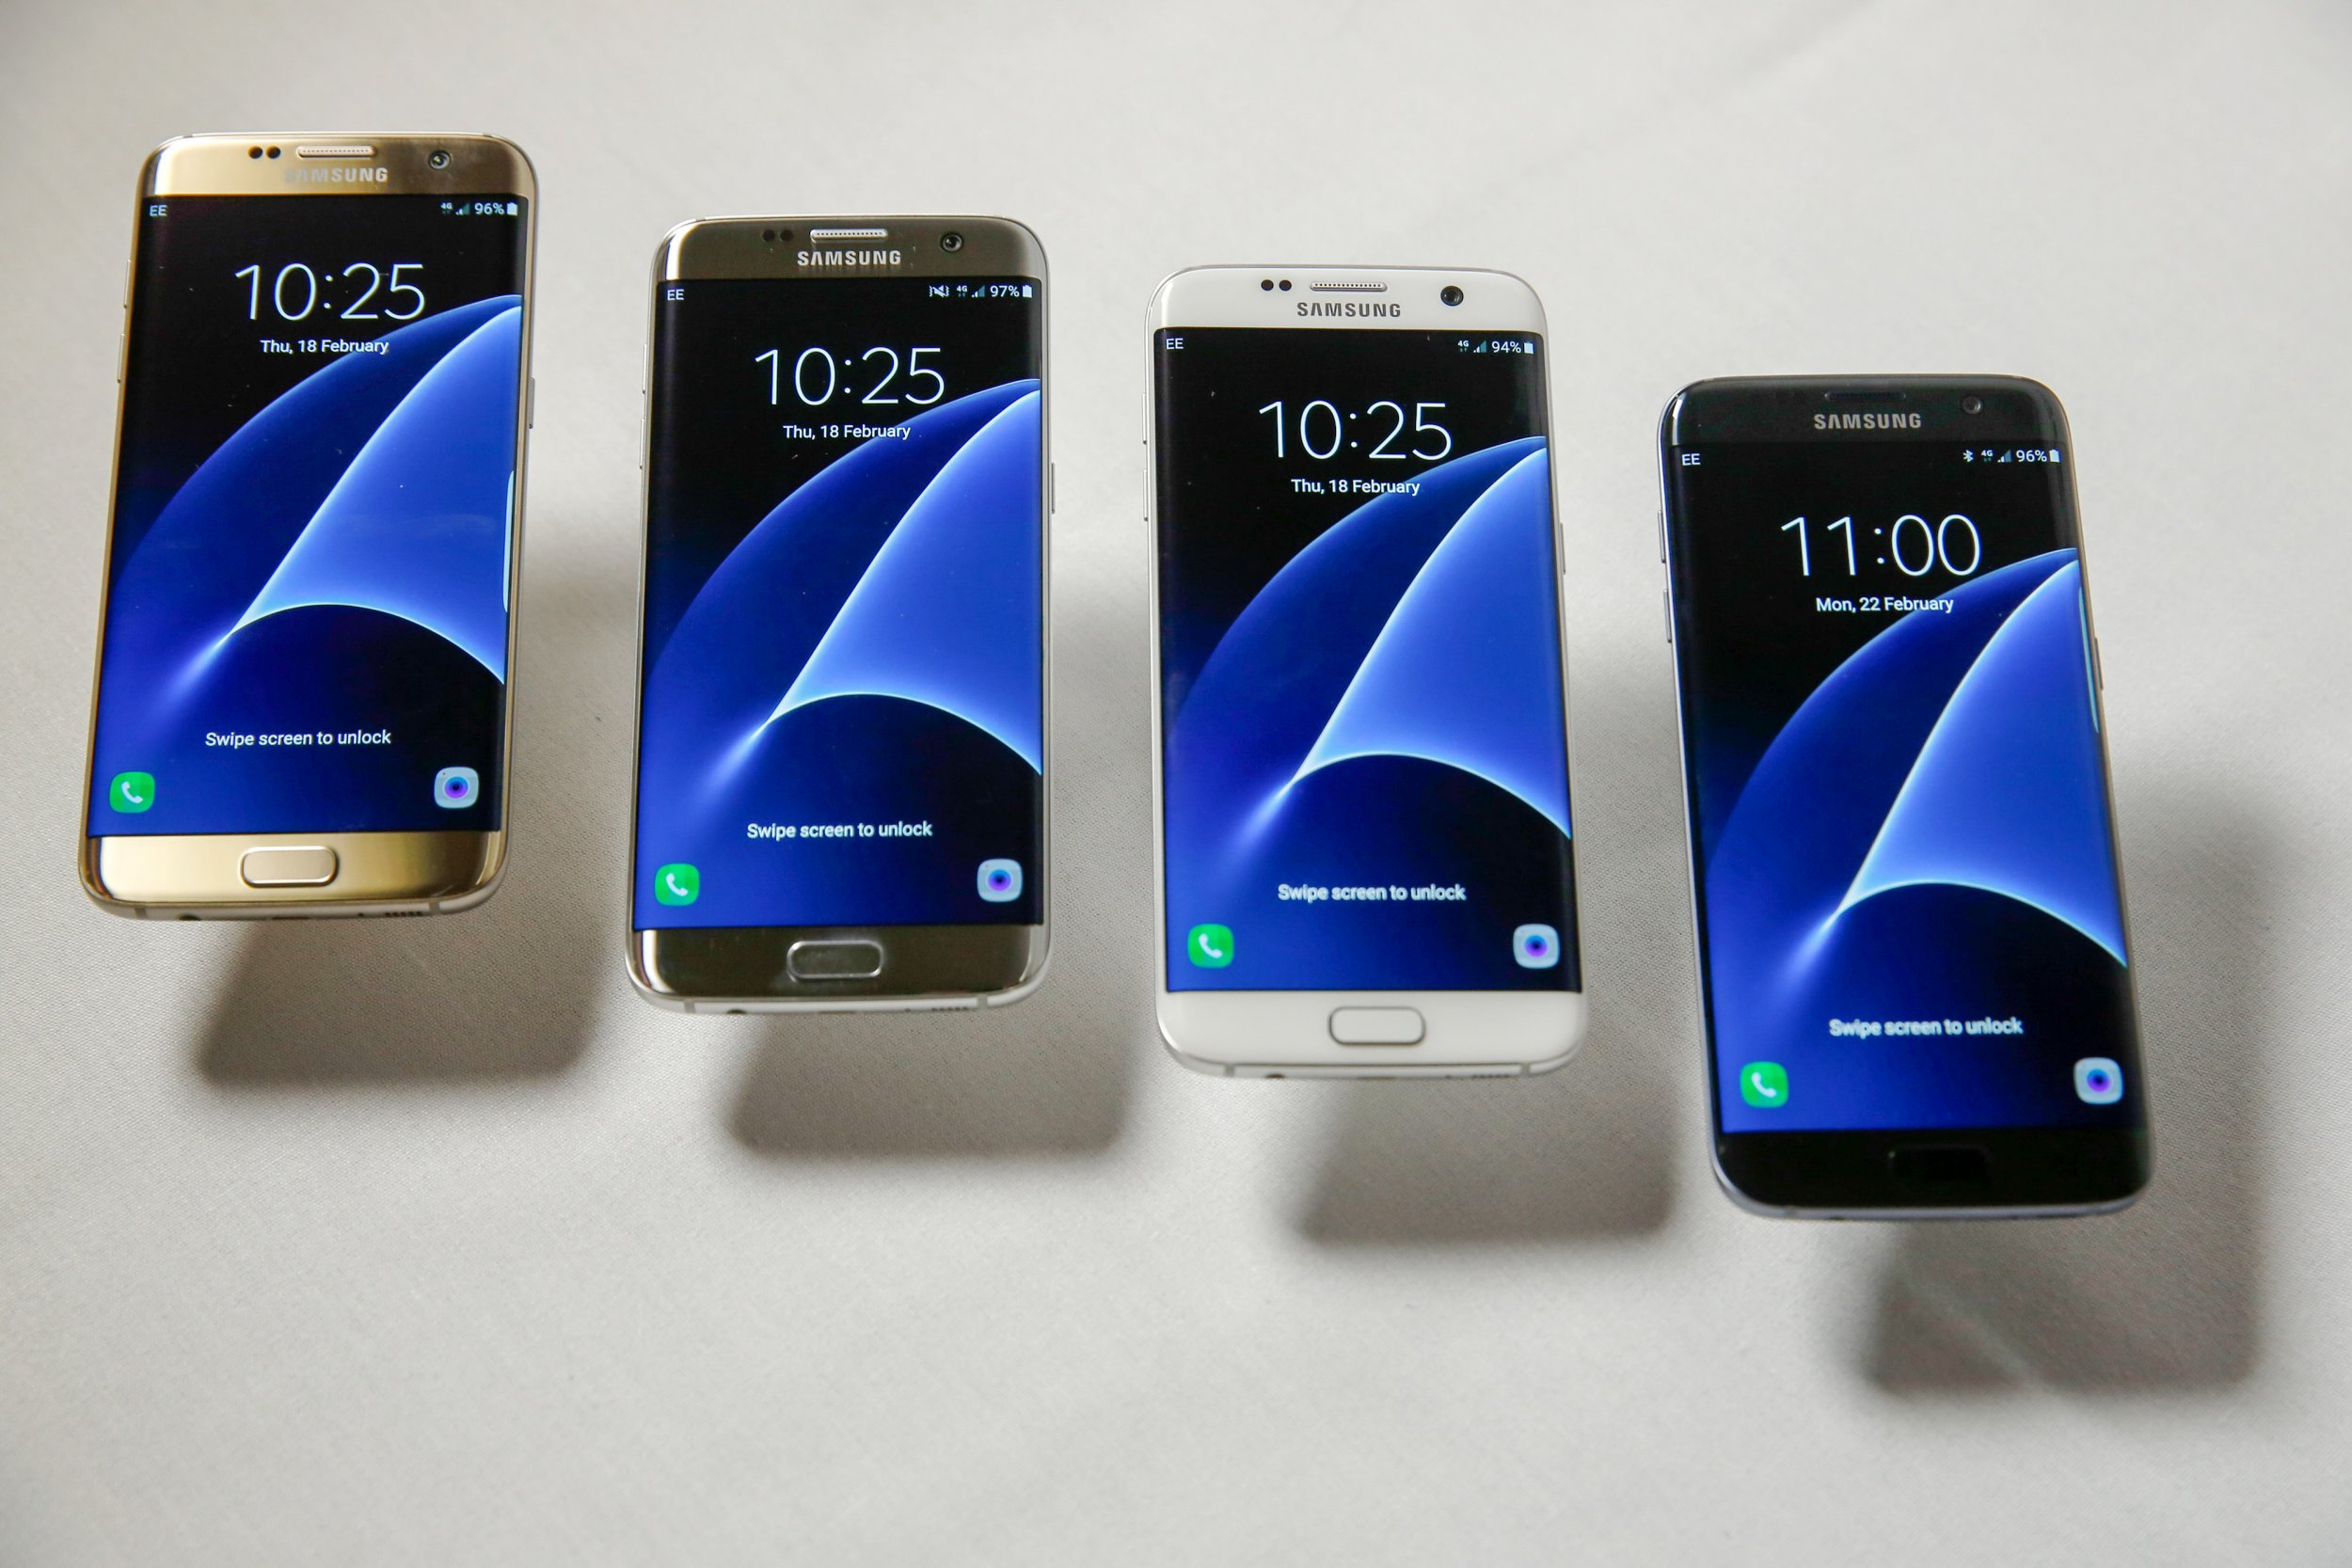 The new range of Samsung Electronics Co. Galaxy S7 edge with 3D thermo forming in four finishes, left to right, Gold Platinum, Silver Titanium, White Pearl and Black Onyx all showing the display screen in this arranged photo in London, U.K., on Thursday, Feb. 18, 2016. Samsung showed off new Galaxy S7 smartphones featuring upgraded components and the return of a popular feature missing from their predecessors, in the latest attempt to breathe life into its premium line and wrest ascendancy back from Apple Inc. Photographer: Luke MacGregor/Bloomberg via Getty Images